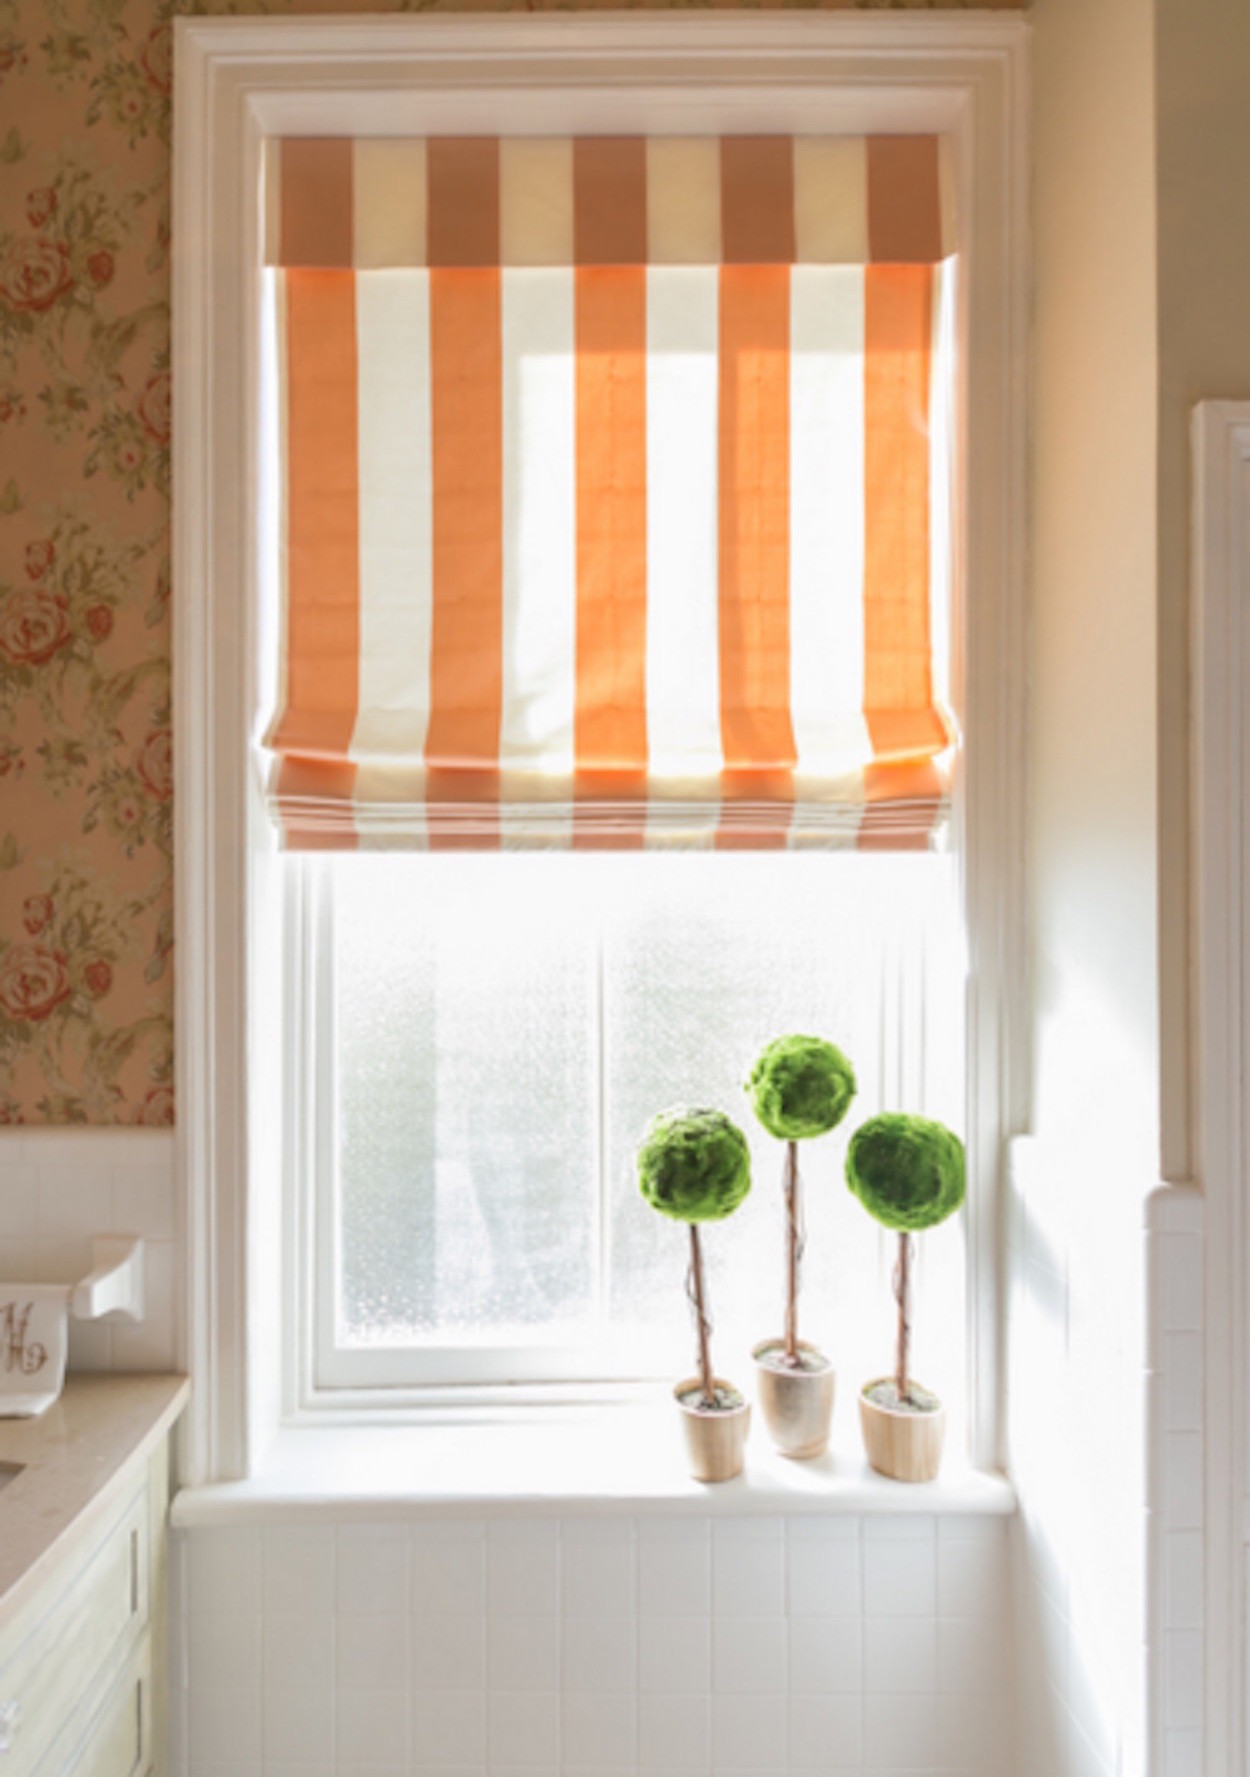 7 Diffe Bathroom Window Treatments You Might Not Have Thought Of